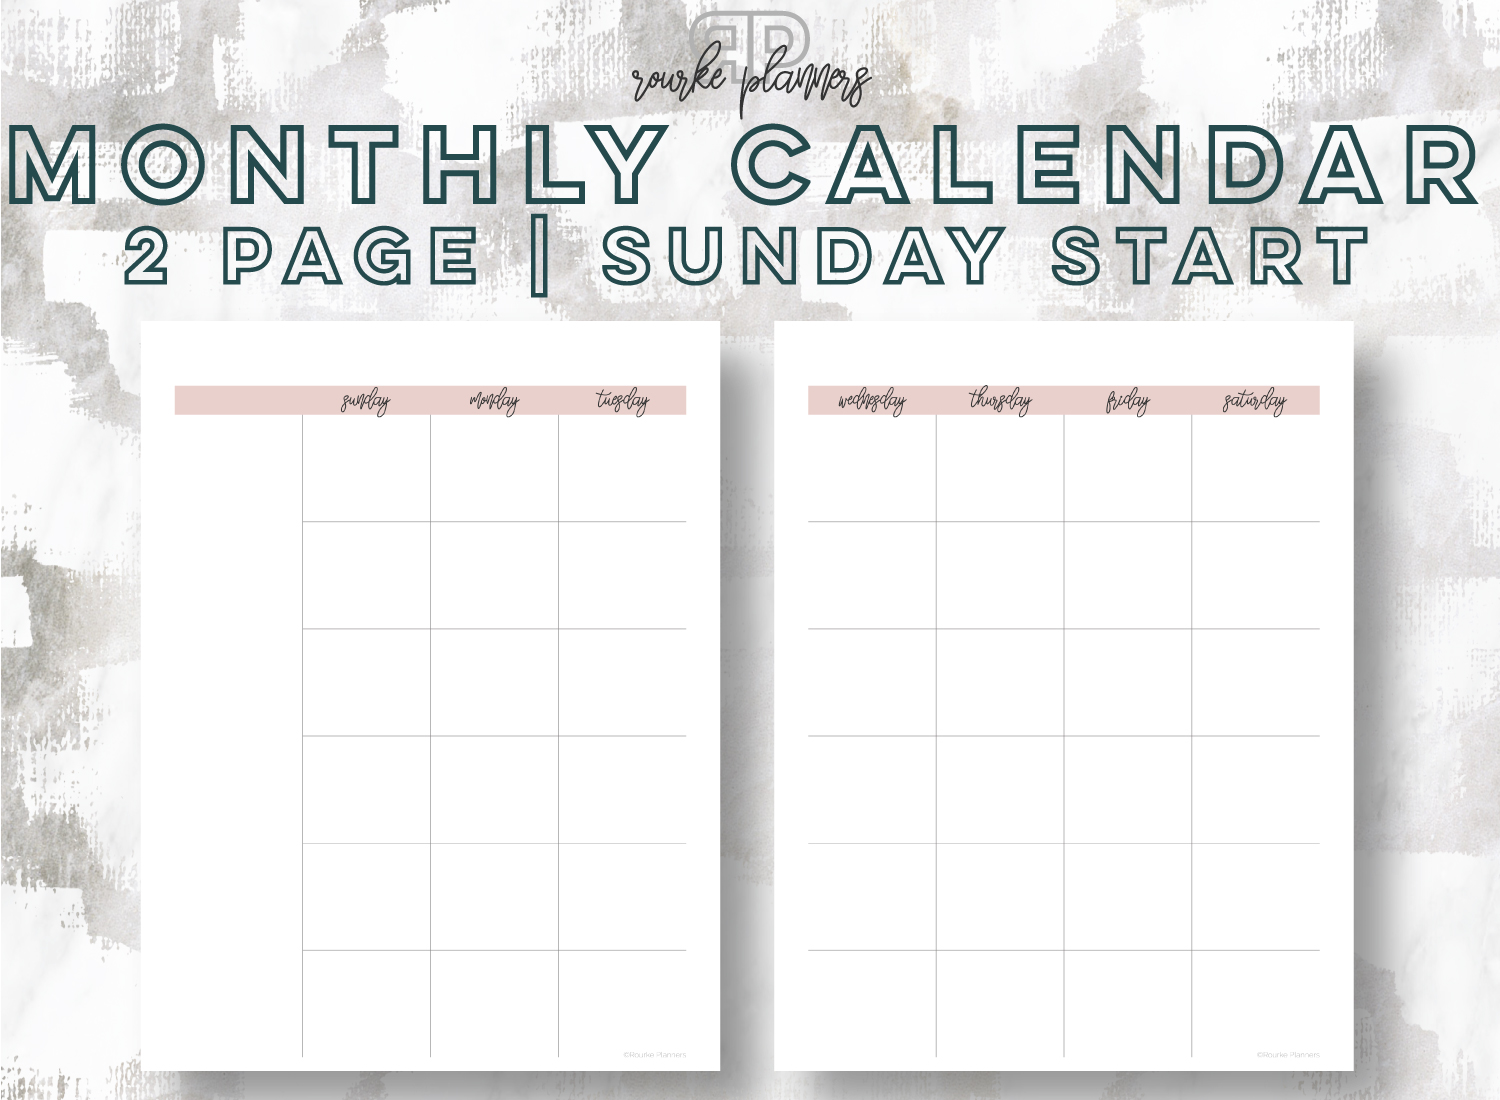 2-Page Monthly Calendar, Sunday Start   Rourke Planners